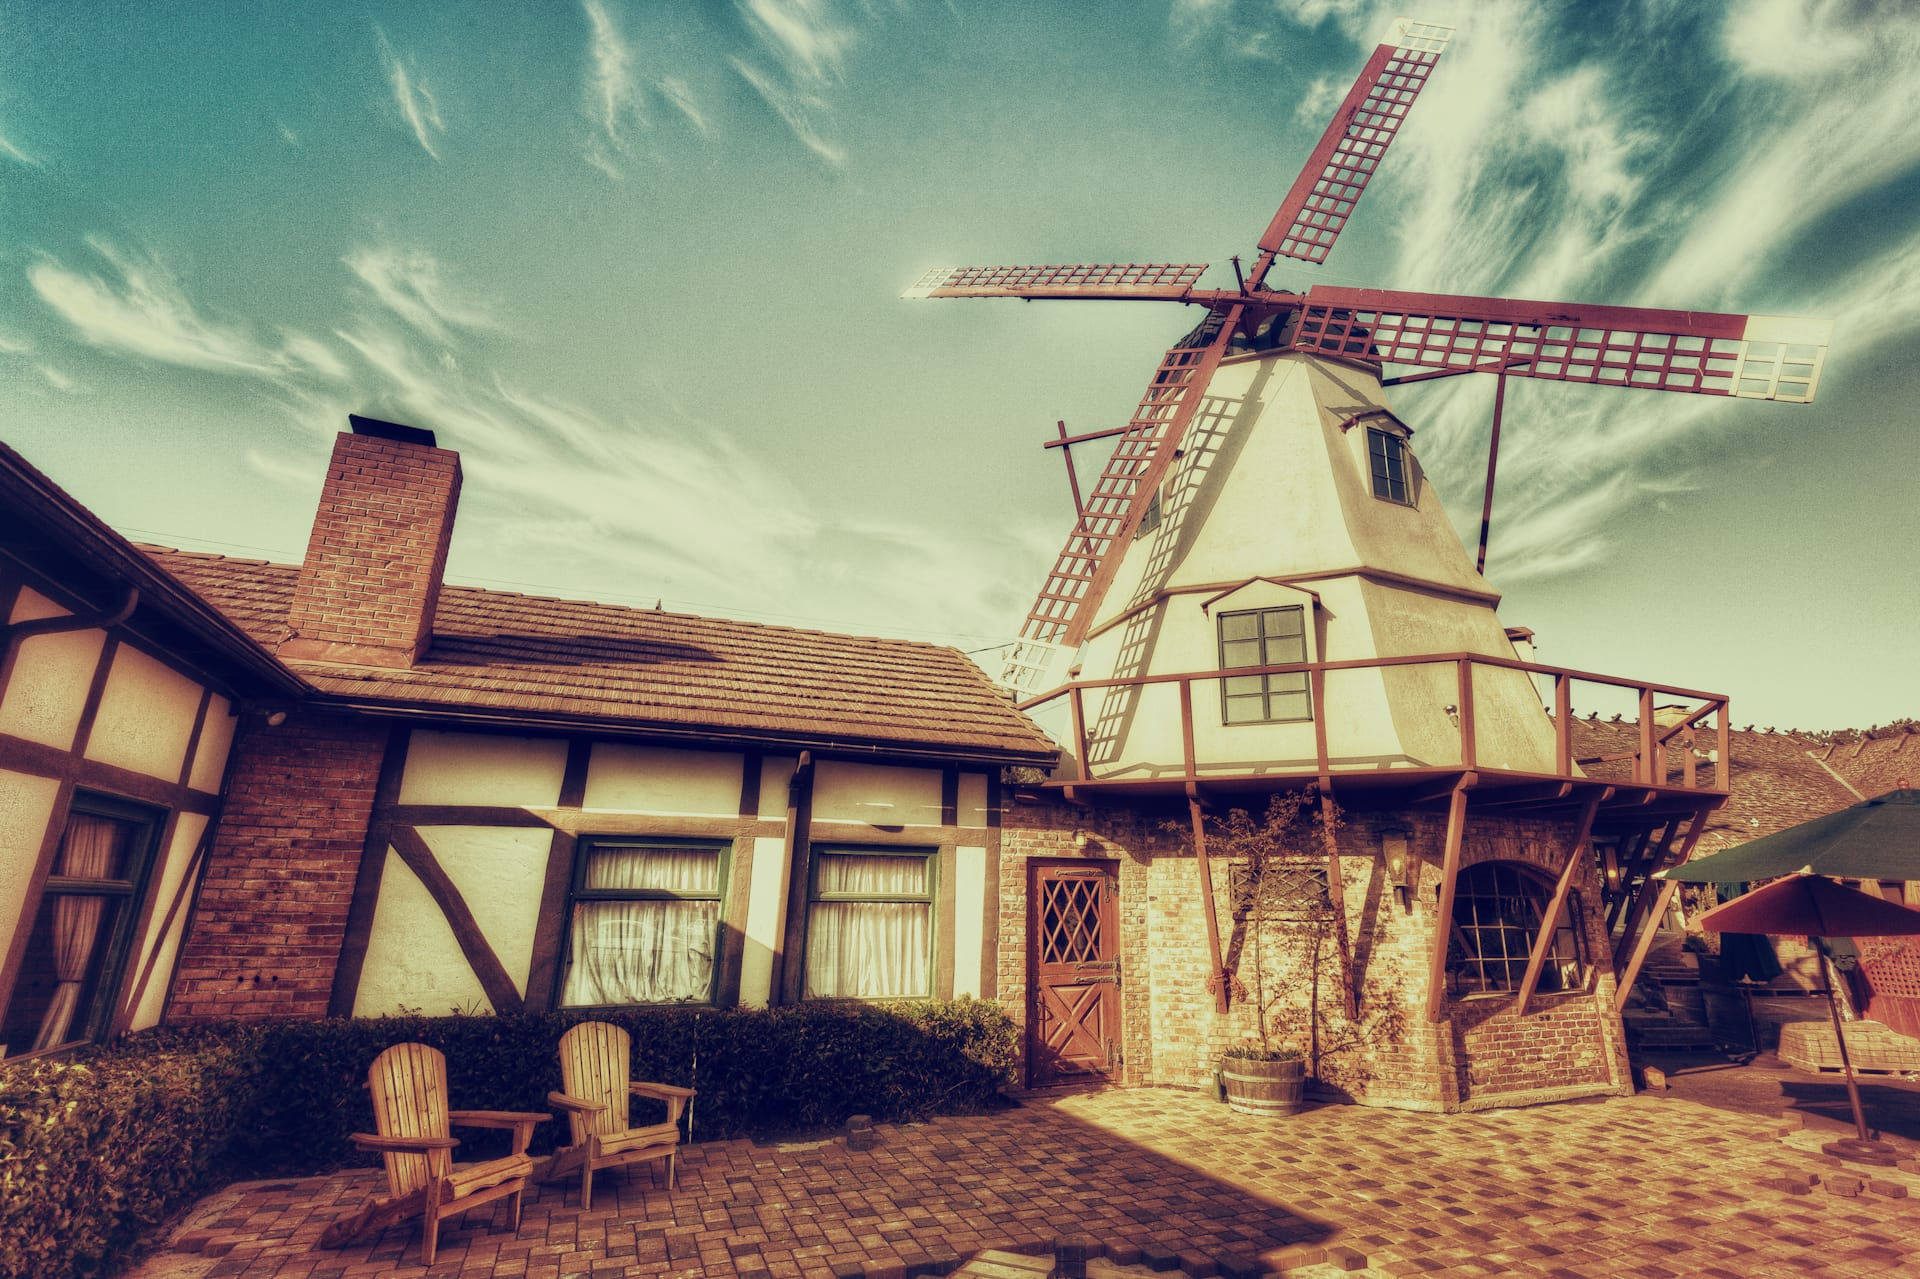 Windmill of Solvang, HDR Photo